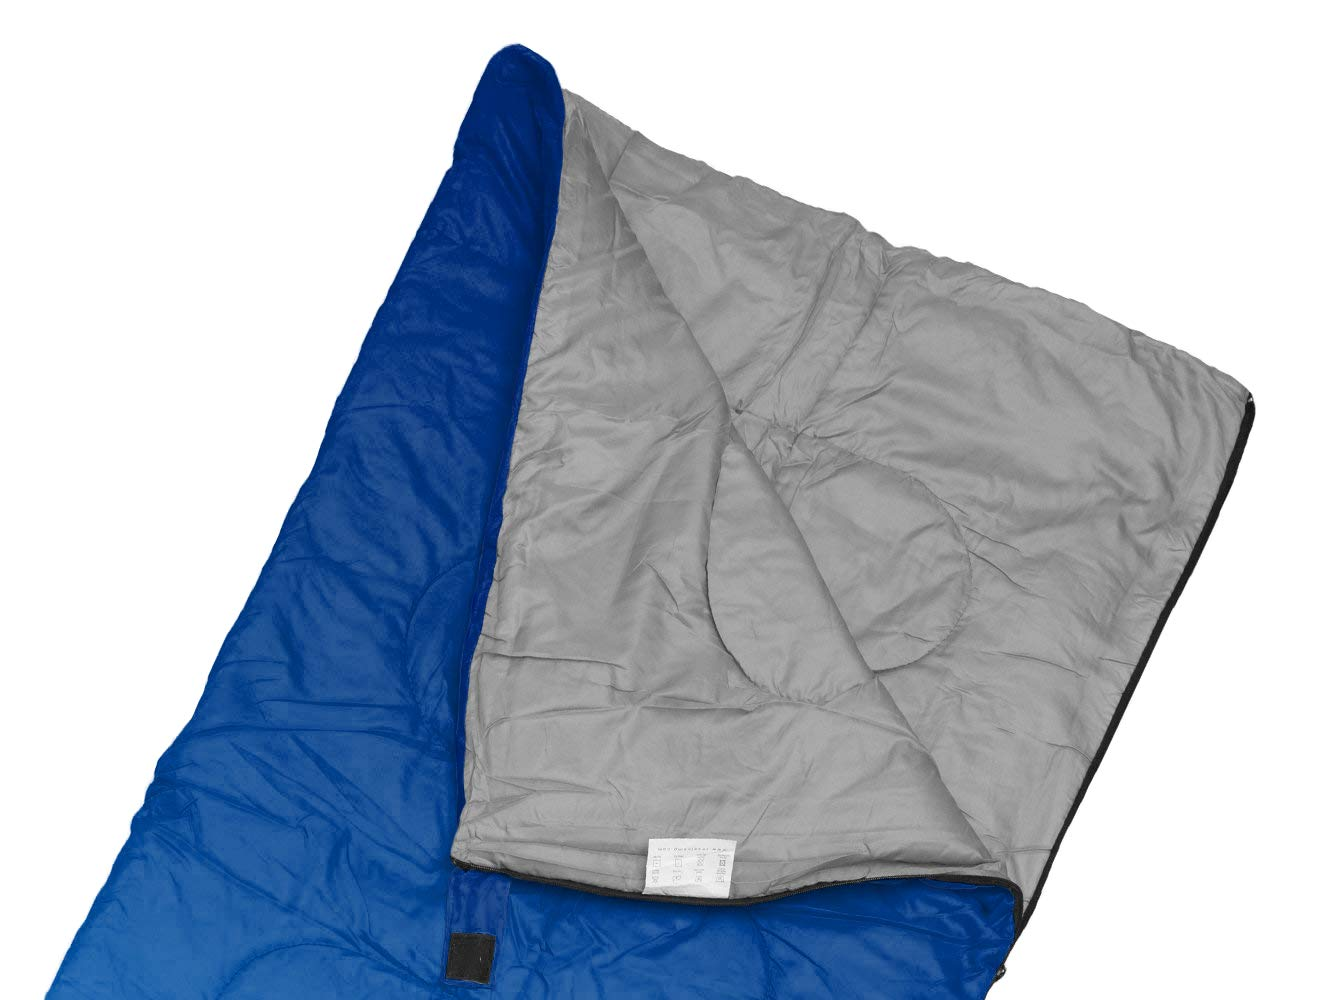 REVALCAMP Lightweight Sleeping Bag - Beach - Indoor & Outdoor use. Great for Kids, Teens & Adults. Ultra Light and Compact Bags are Perfect for Hiking, Backpacking, Camping & Travel. 5